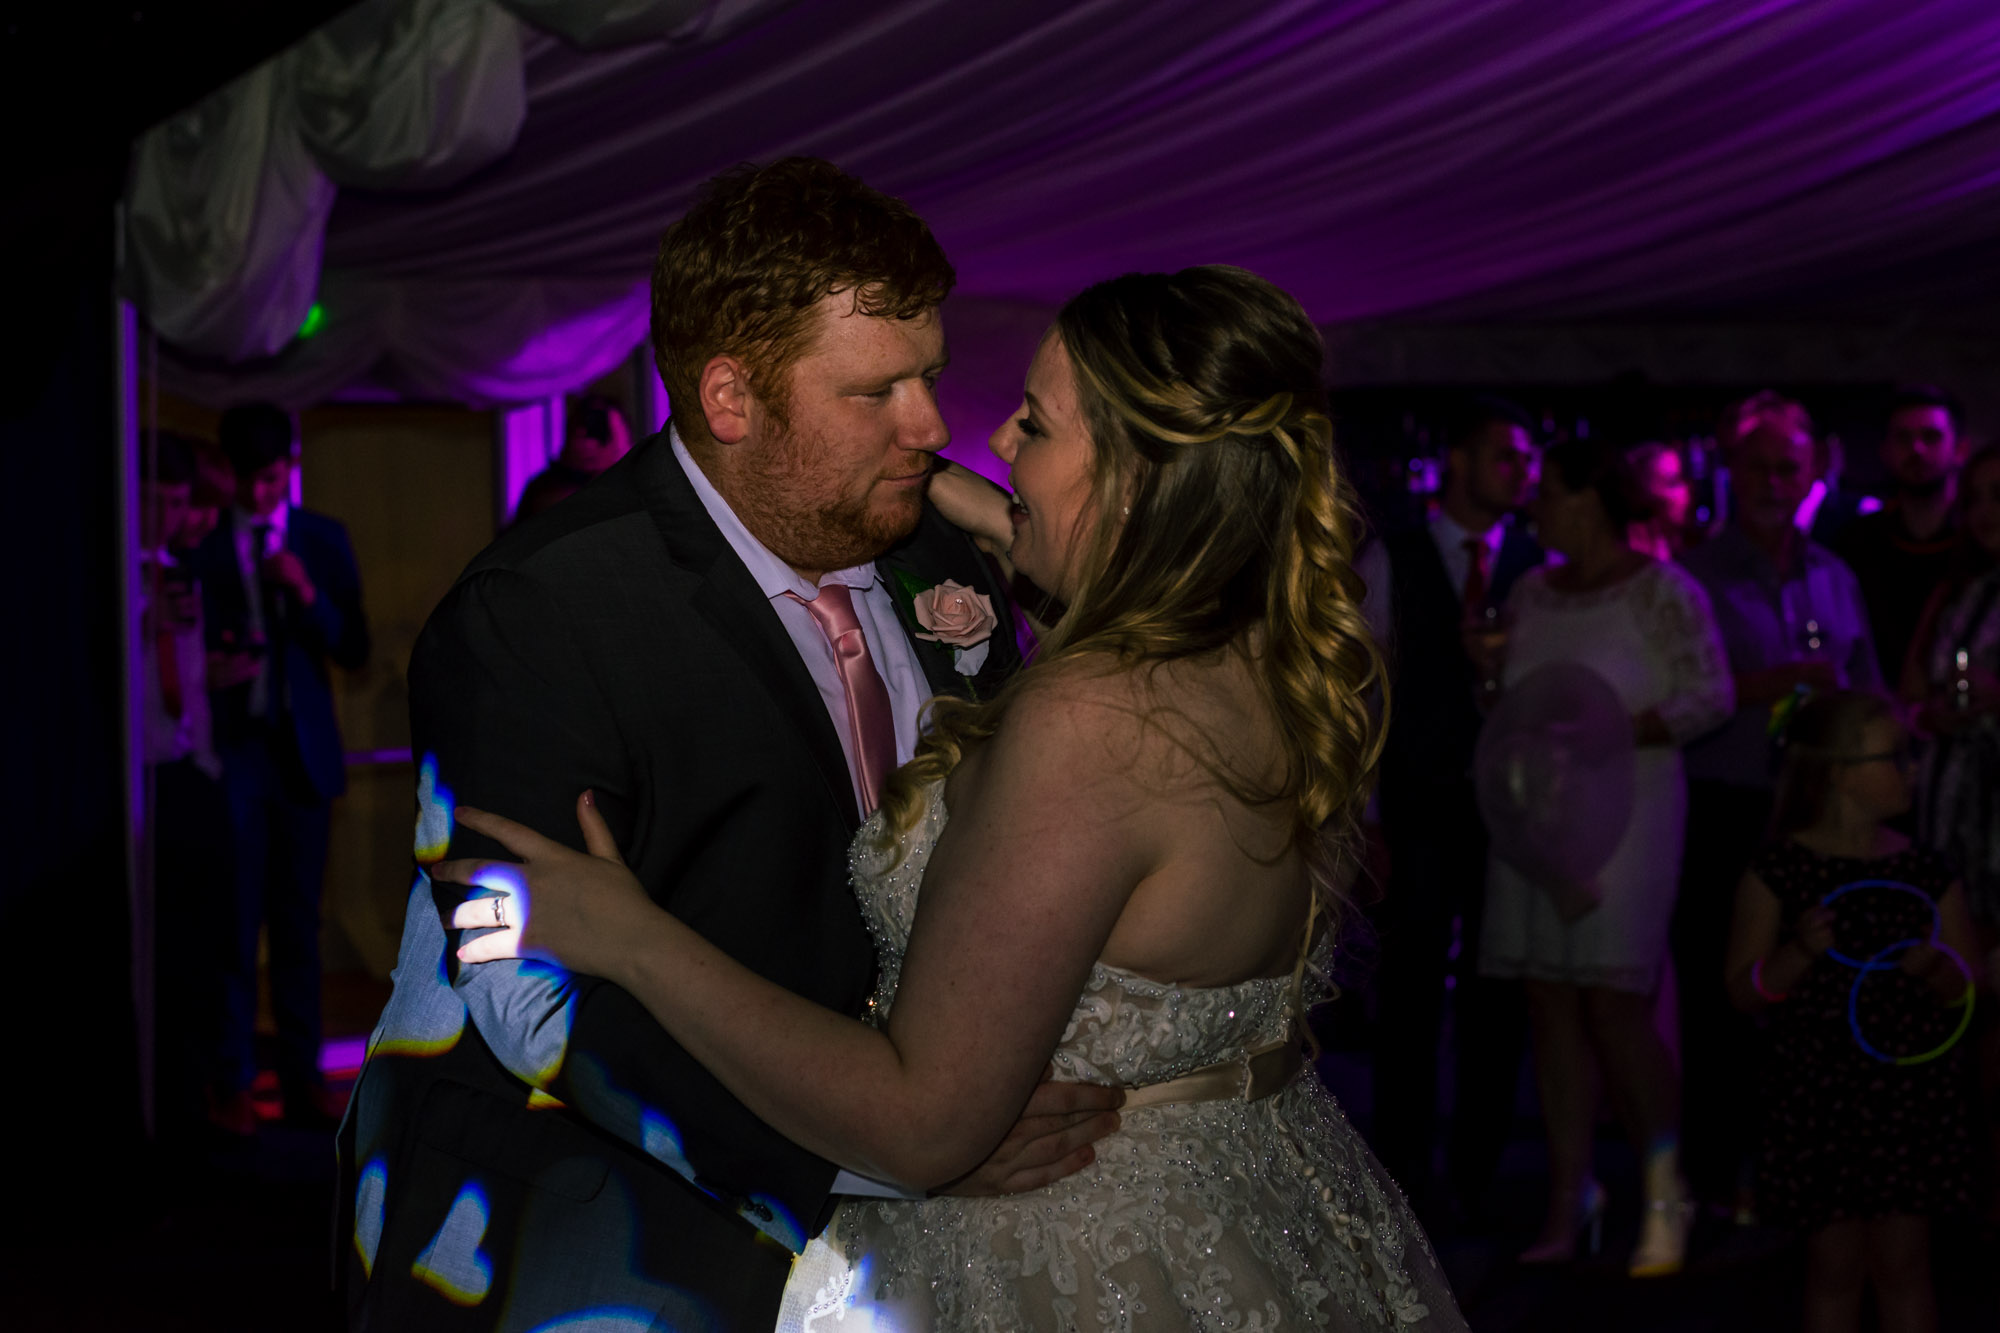 bride and groom go in for a kiss during the first dance